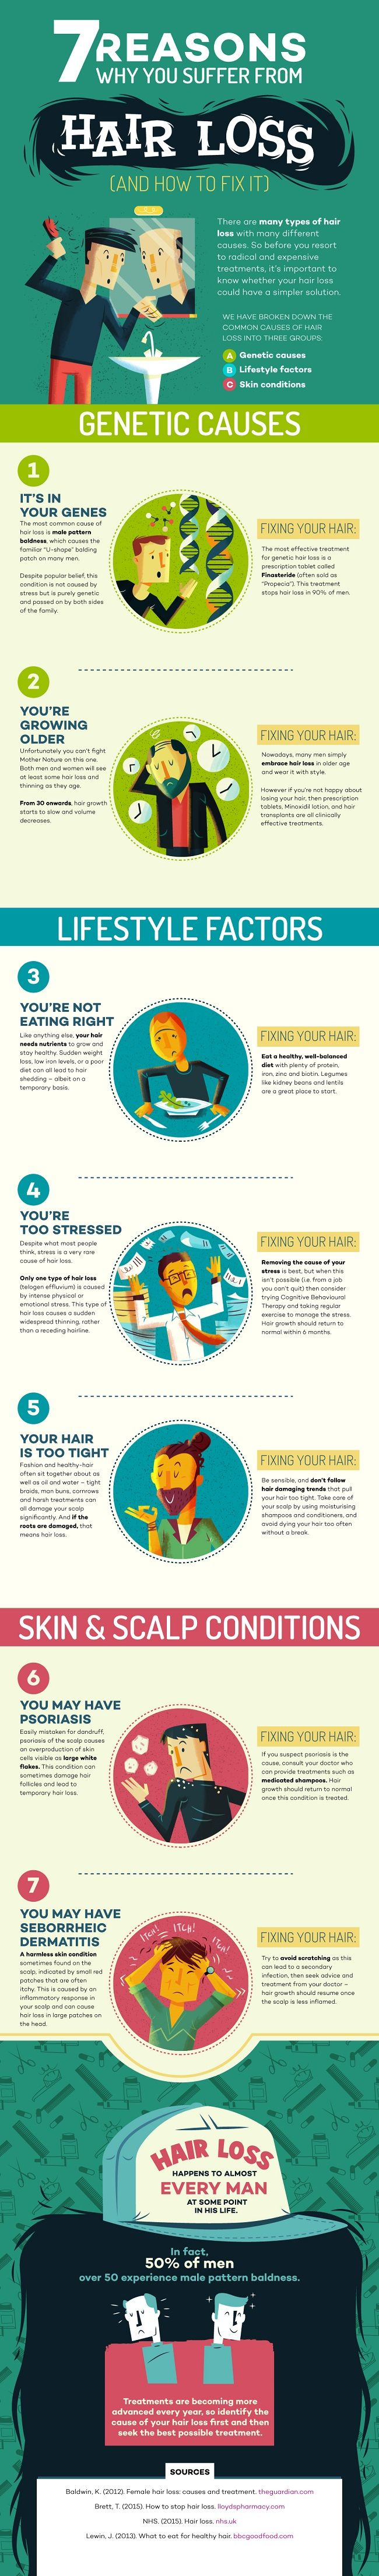 We list all the reasons why guys lose their hair and how to fix them in this guide to 7 Common Male Hair Loss Causes.